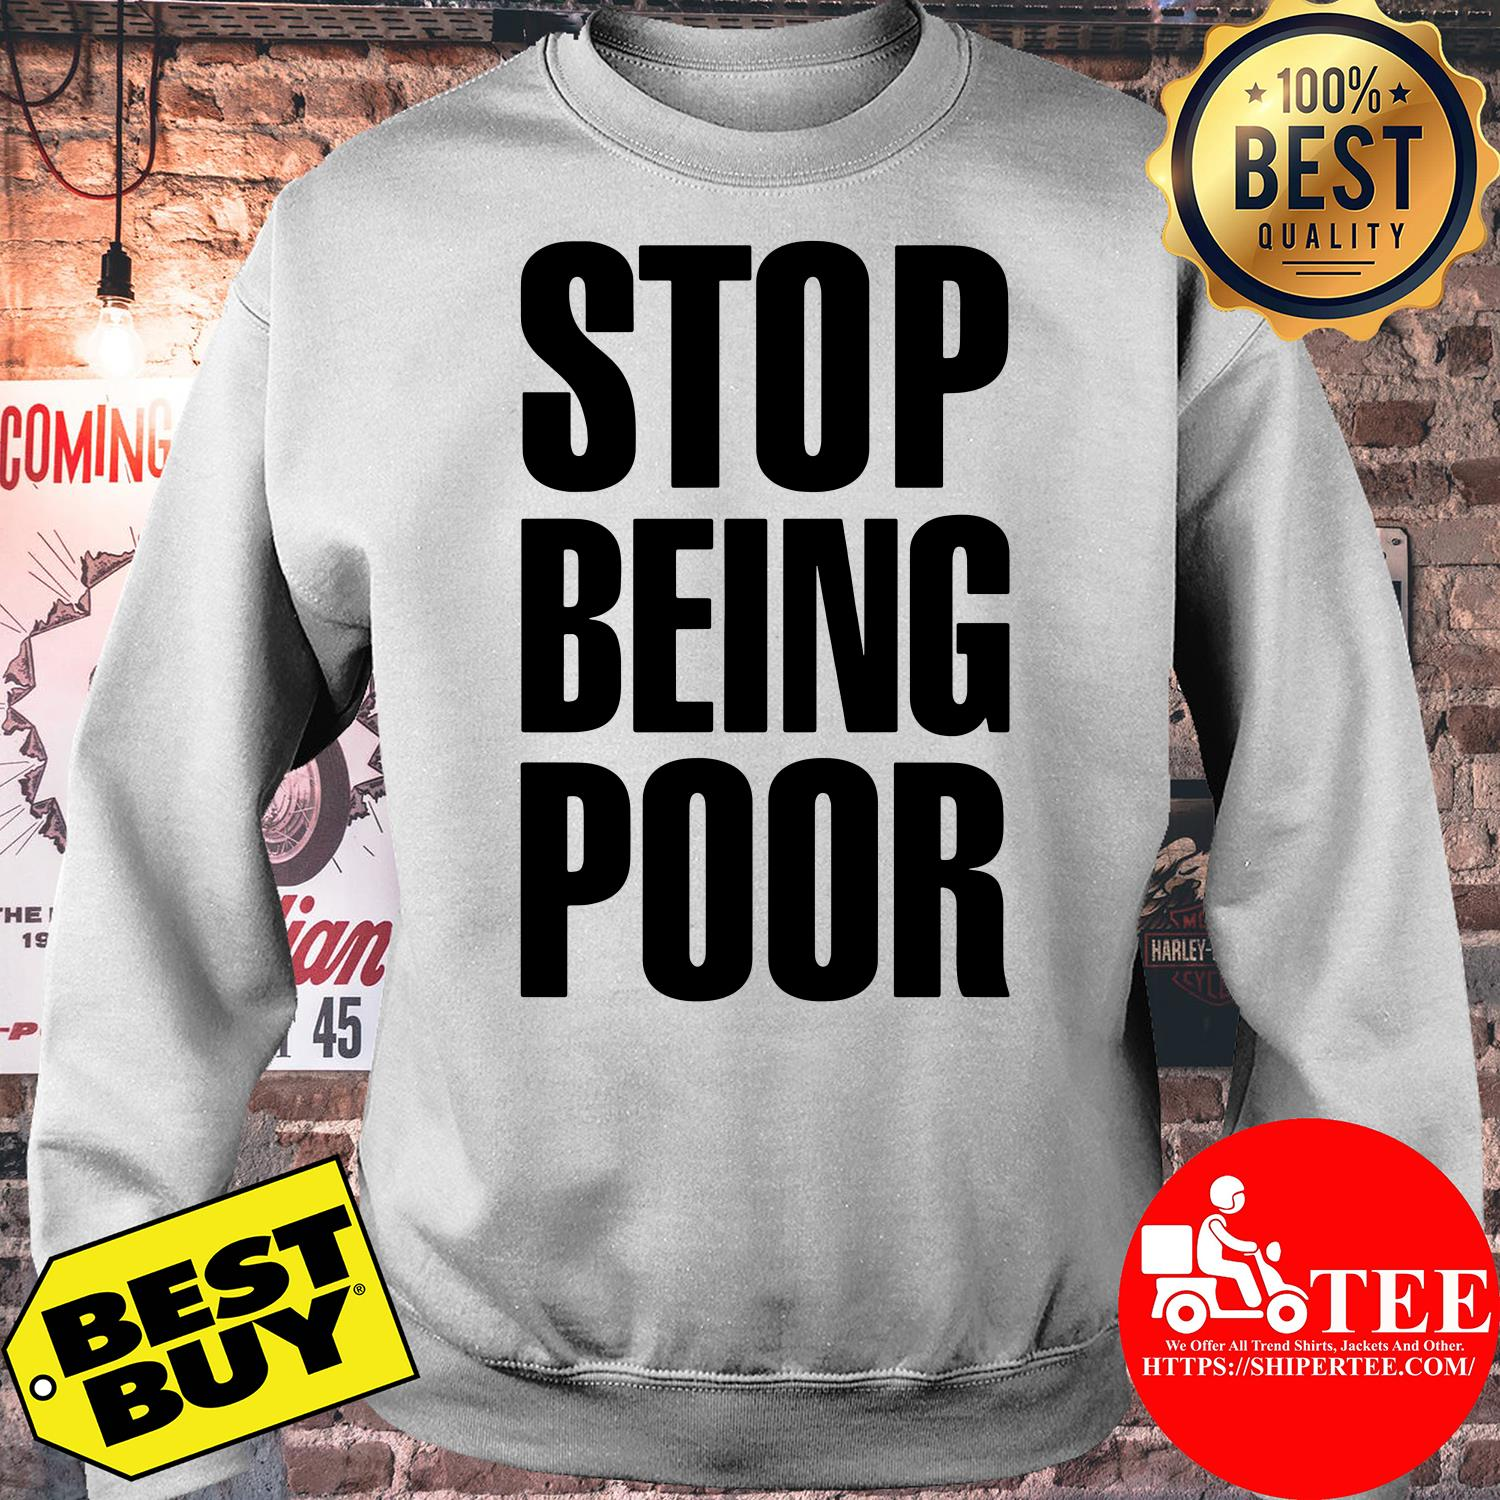 Stop Being Poor Paris Hilton sweatshirt